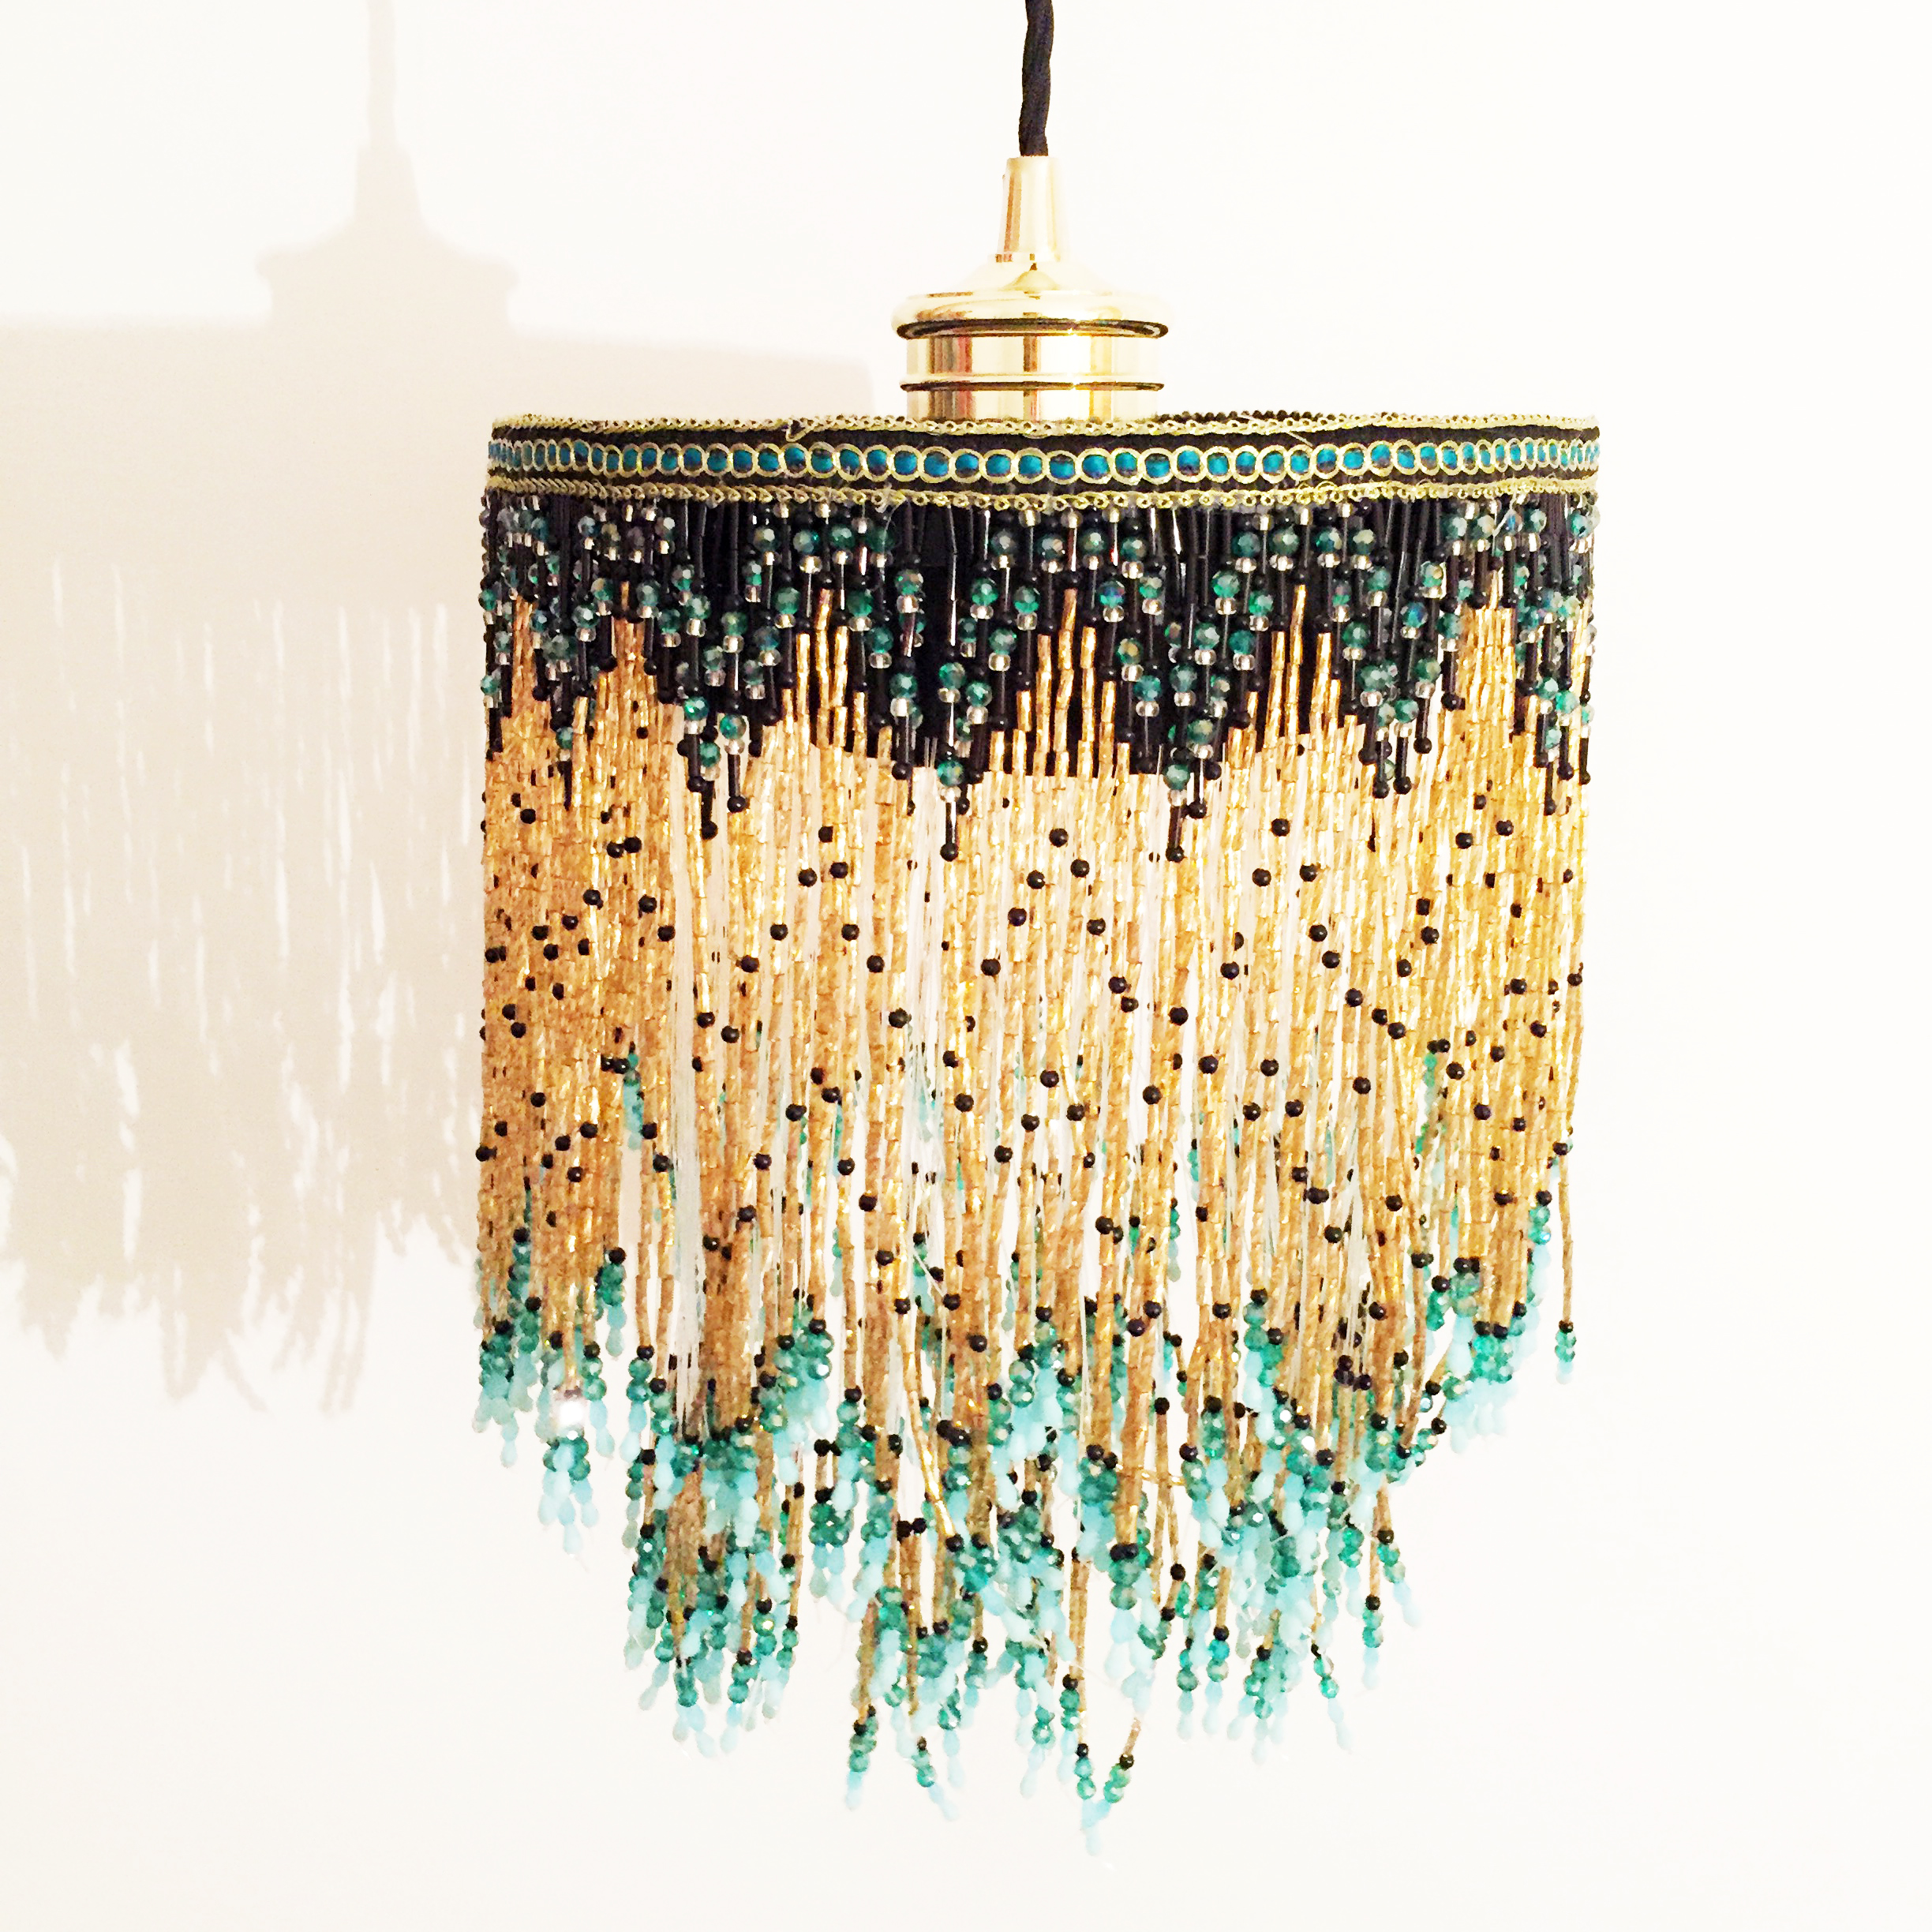 Bespoke beaded lampshade